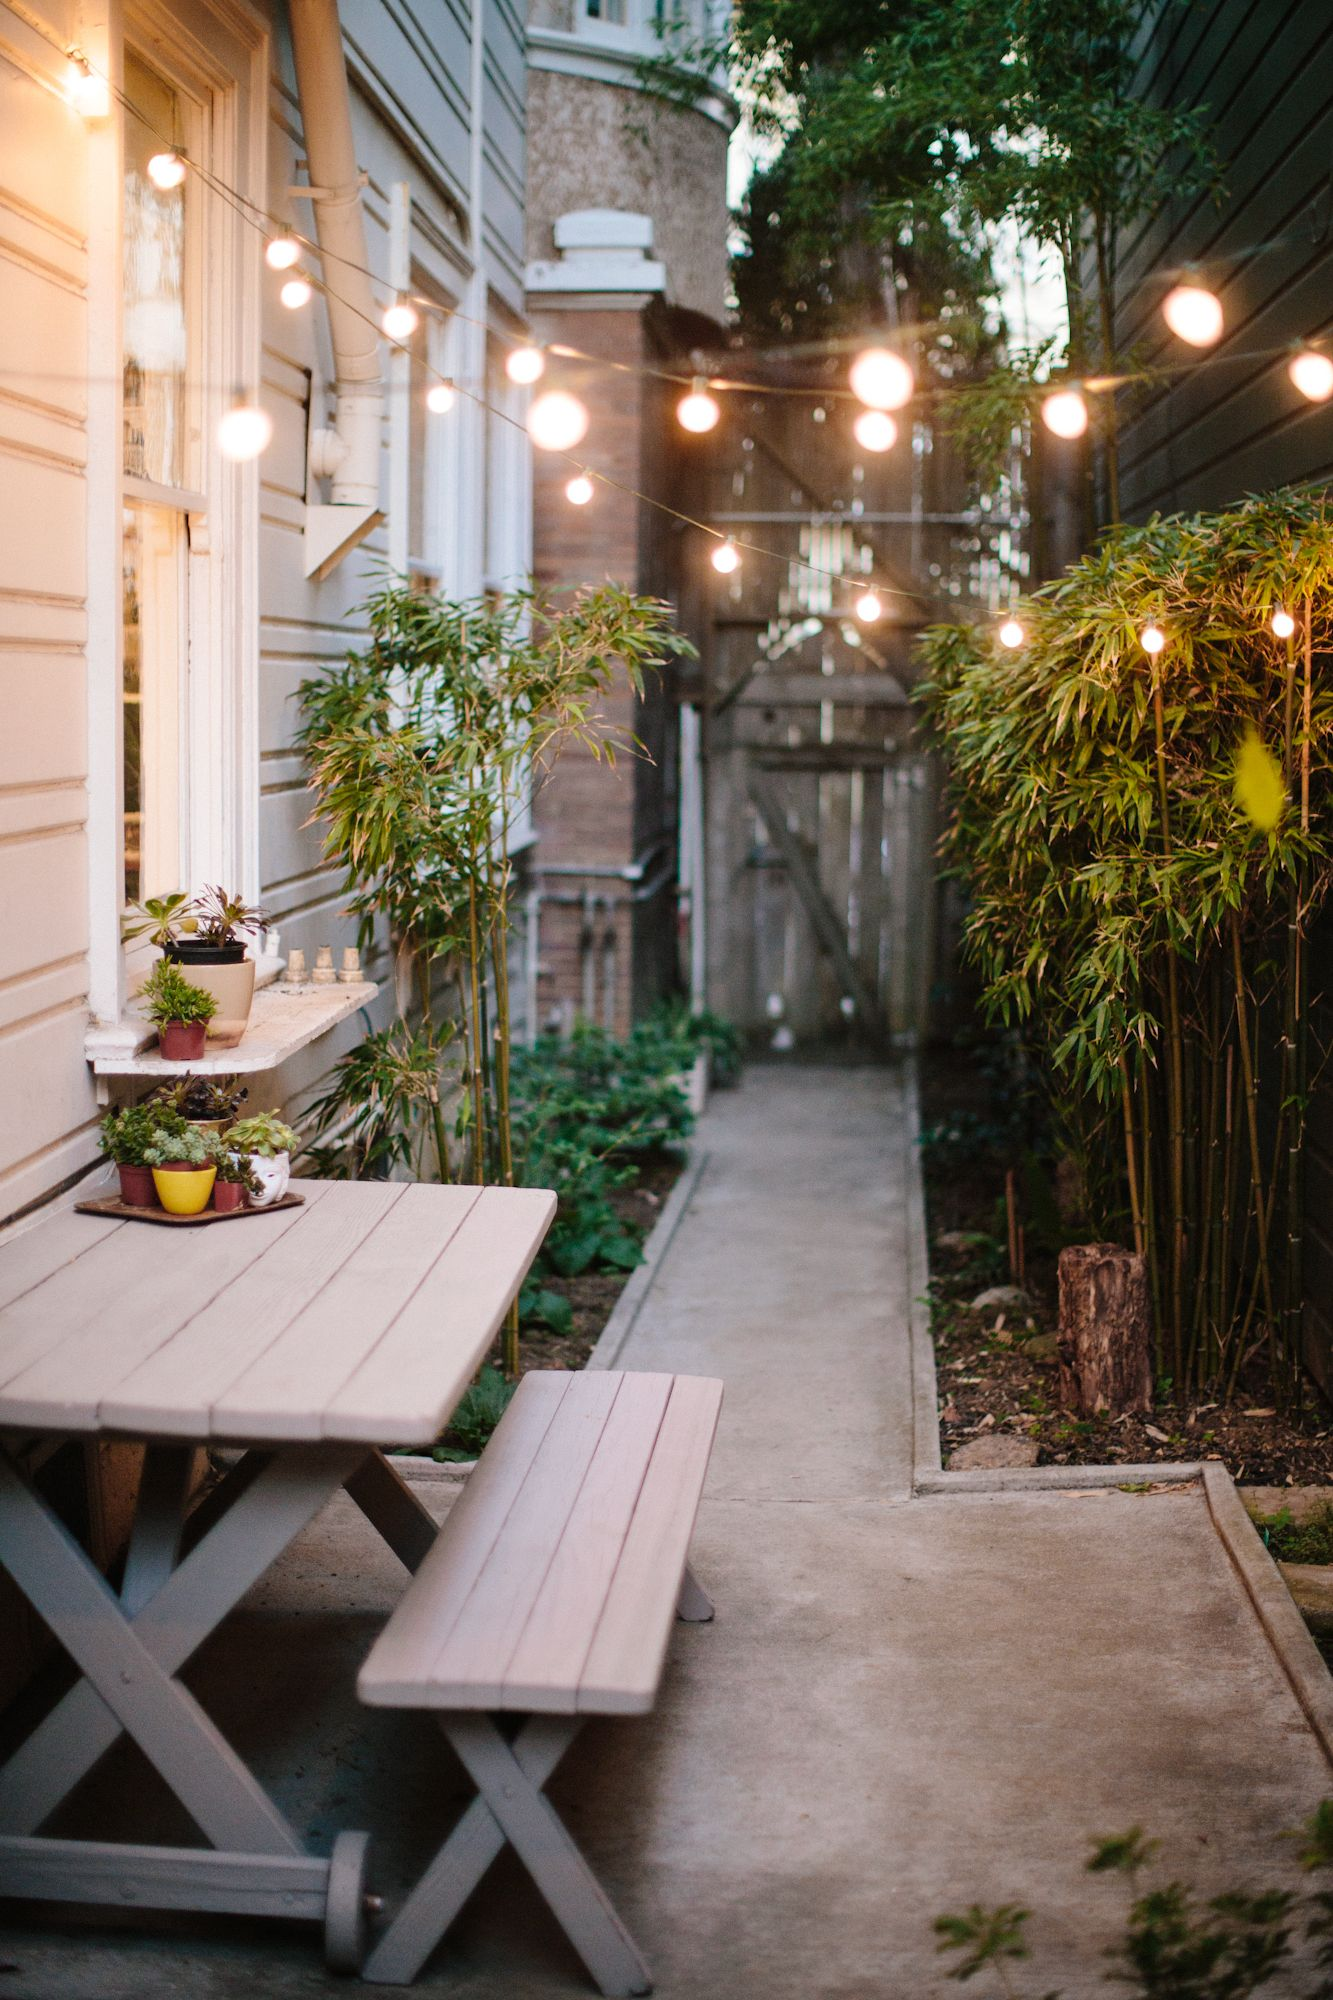 Beautiful Ideas For Small Outdoor Spaces Part - 2: Home Tour / Kate Davison + Jesse Hayes. Small Outdoor SpacesSmall ...